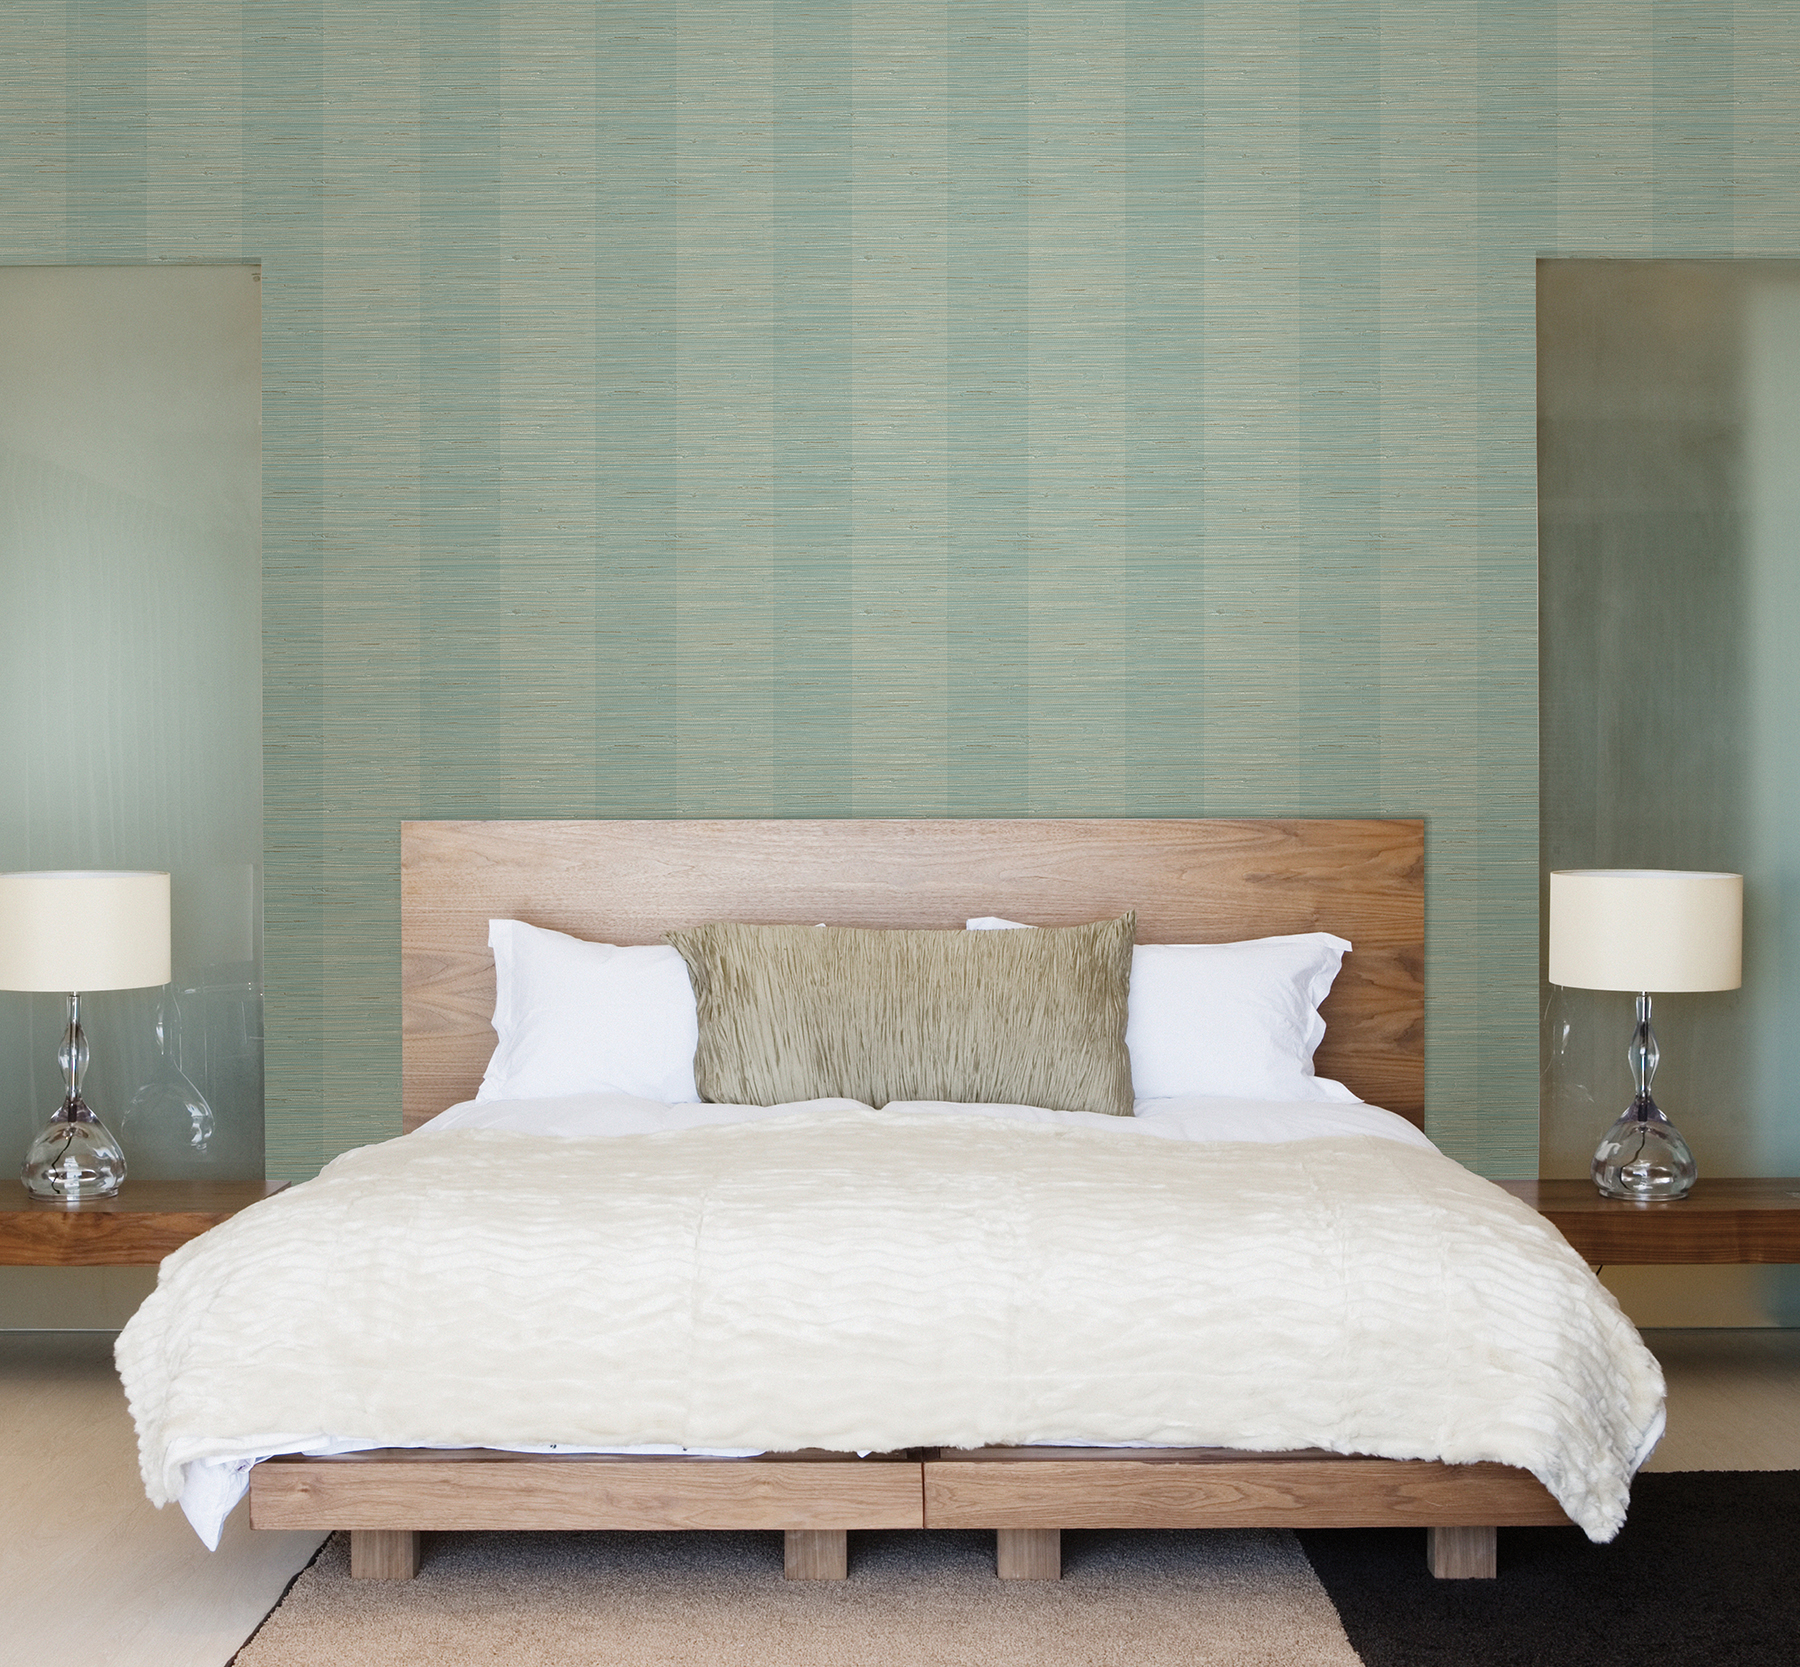 Download Wallpapering Costs Gallery